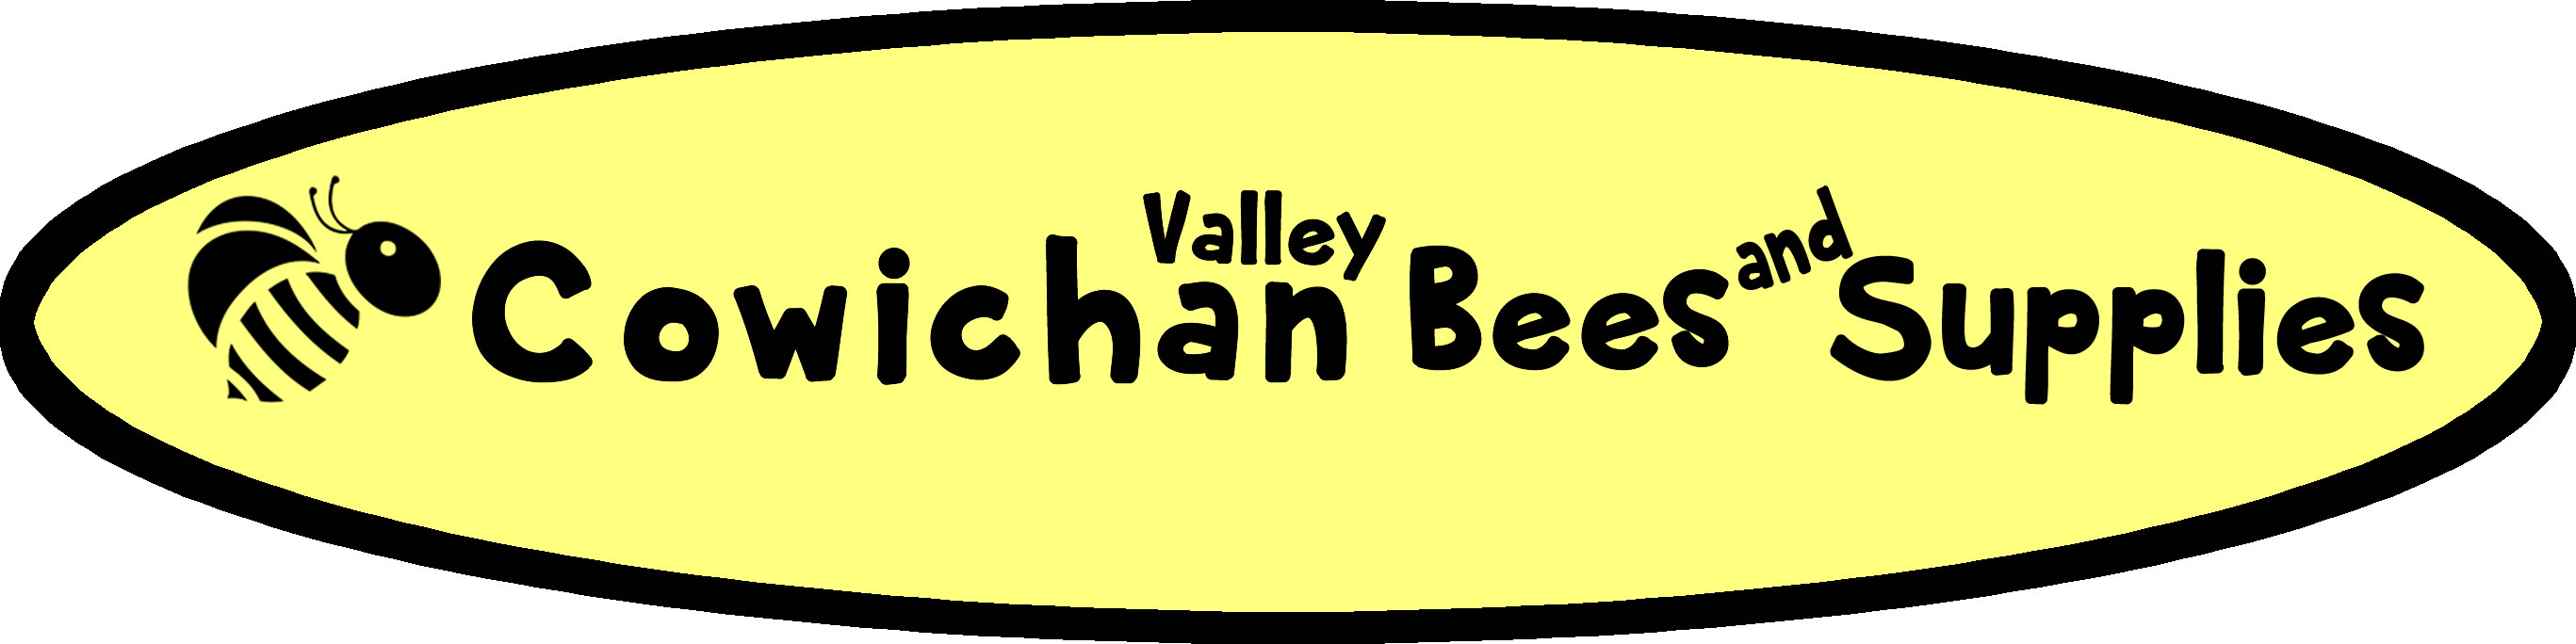 Cowichan Valley Bees and Supplies Store